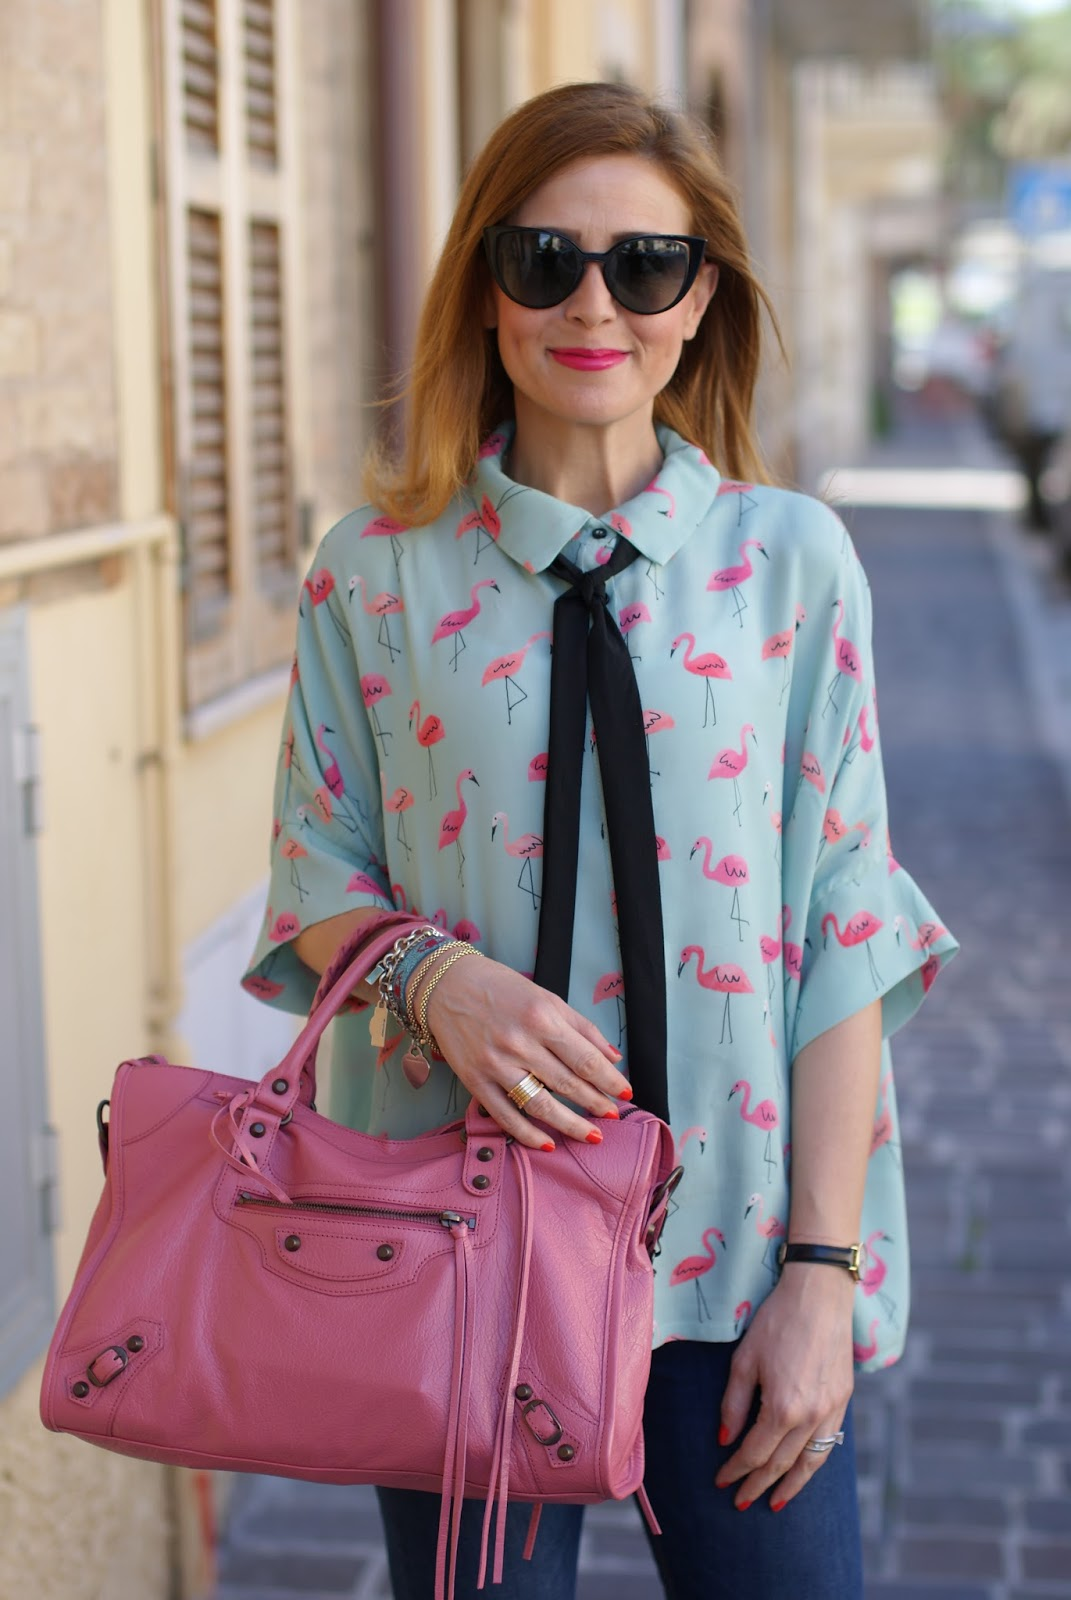 Please Flamingo print shirt, Balenciaga city bag in pink and Fendi sunglasses on Fashion and Cookies fashion blog, fashion blogger style